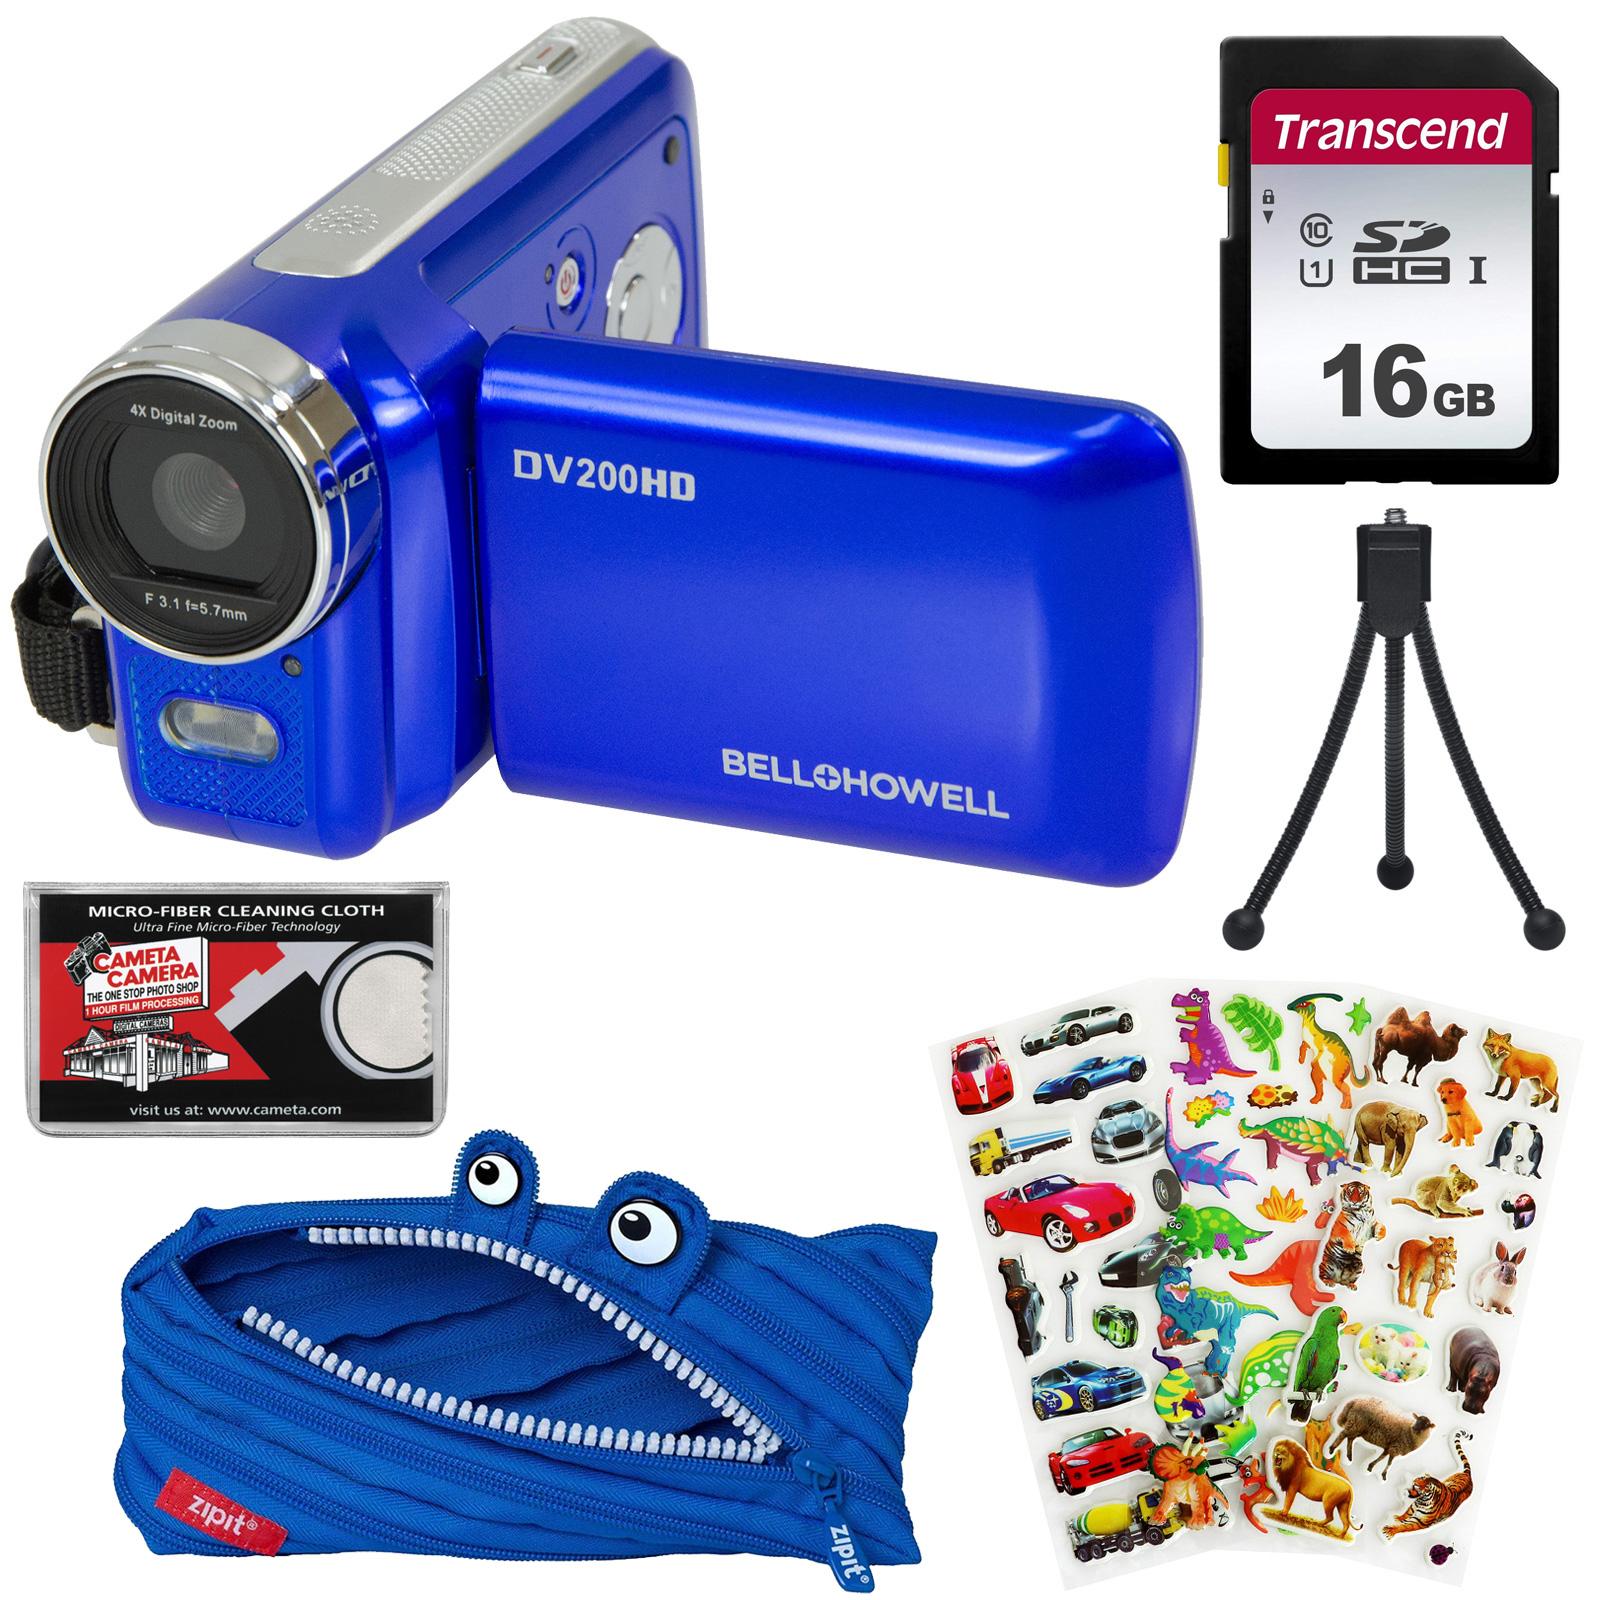 Bell + Howell DV200HD HD Video Camera Camcorder with Built-in Video Light with 16GB Card + Monstar Case + Stickers + Tripod Kit